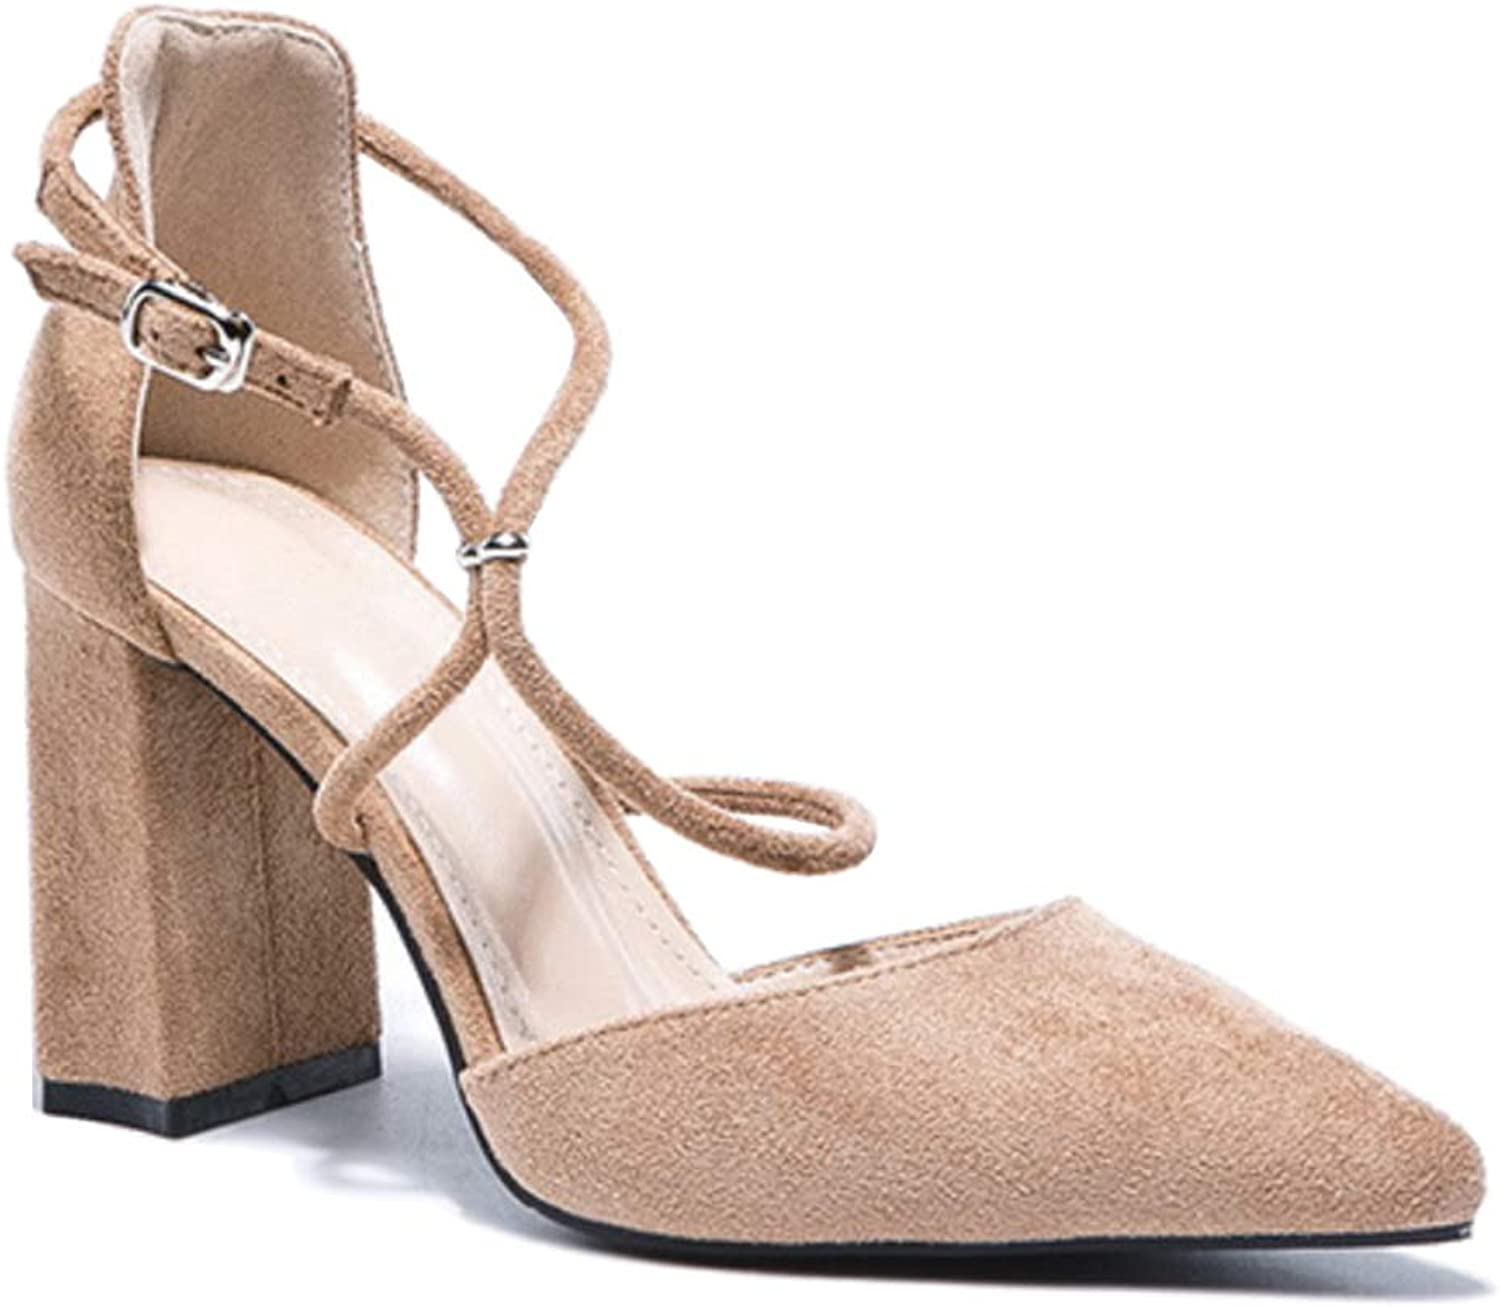 Uirend Women Heeled Sandals shoes - Ladies Pointed Block Heel Ankle Cross Strap Dress Pumps Suede Wedding Bridal Party Buckle Court shoes